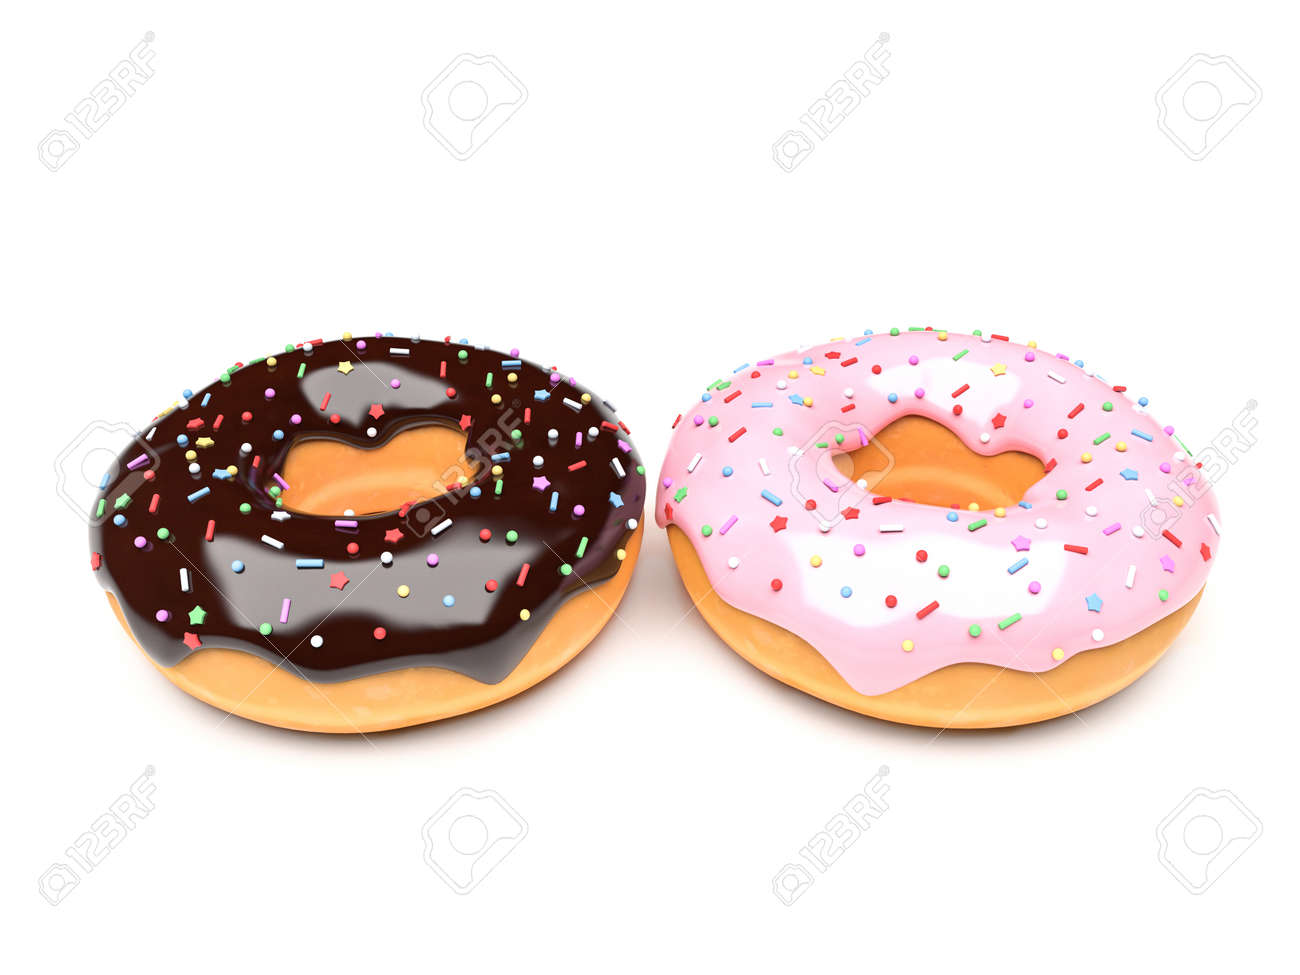 Donuts with chocolate and pink frosting. 3d rendering illustration isolated on white background - 150521311